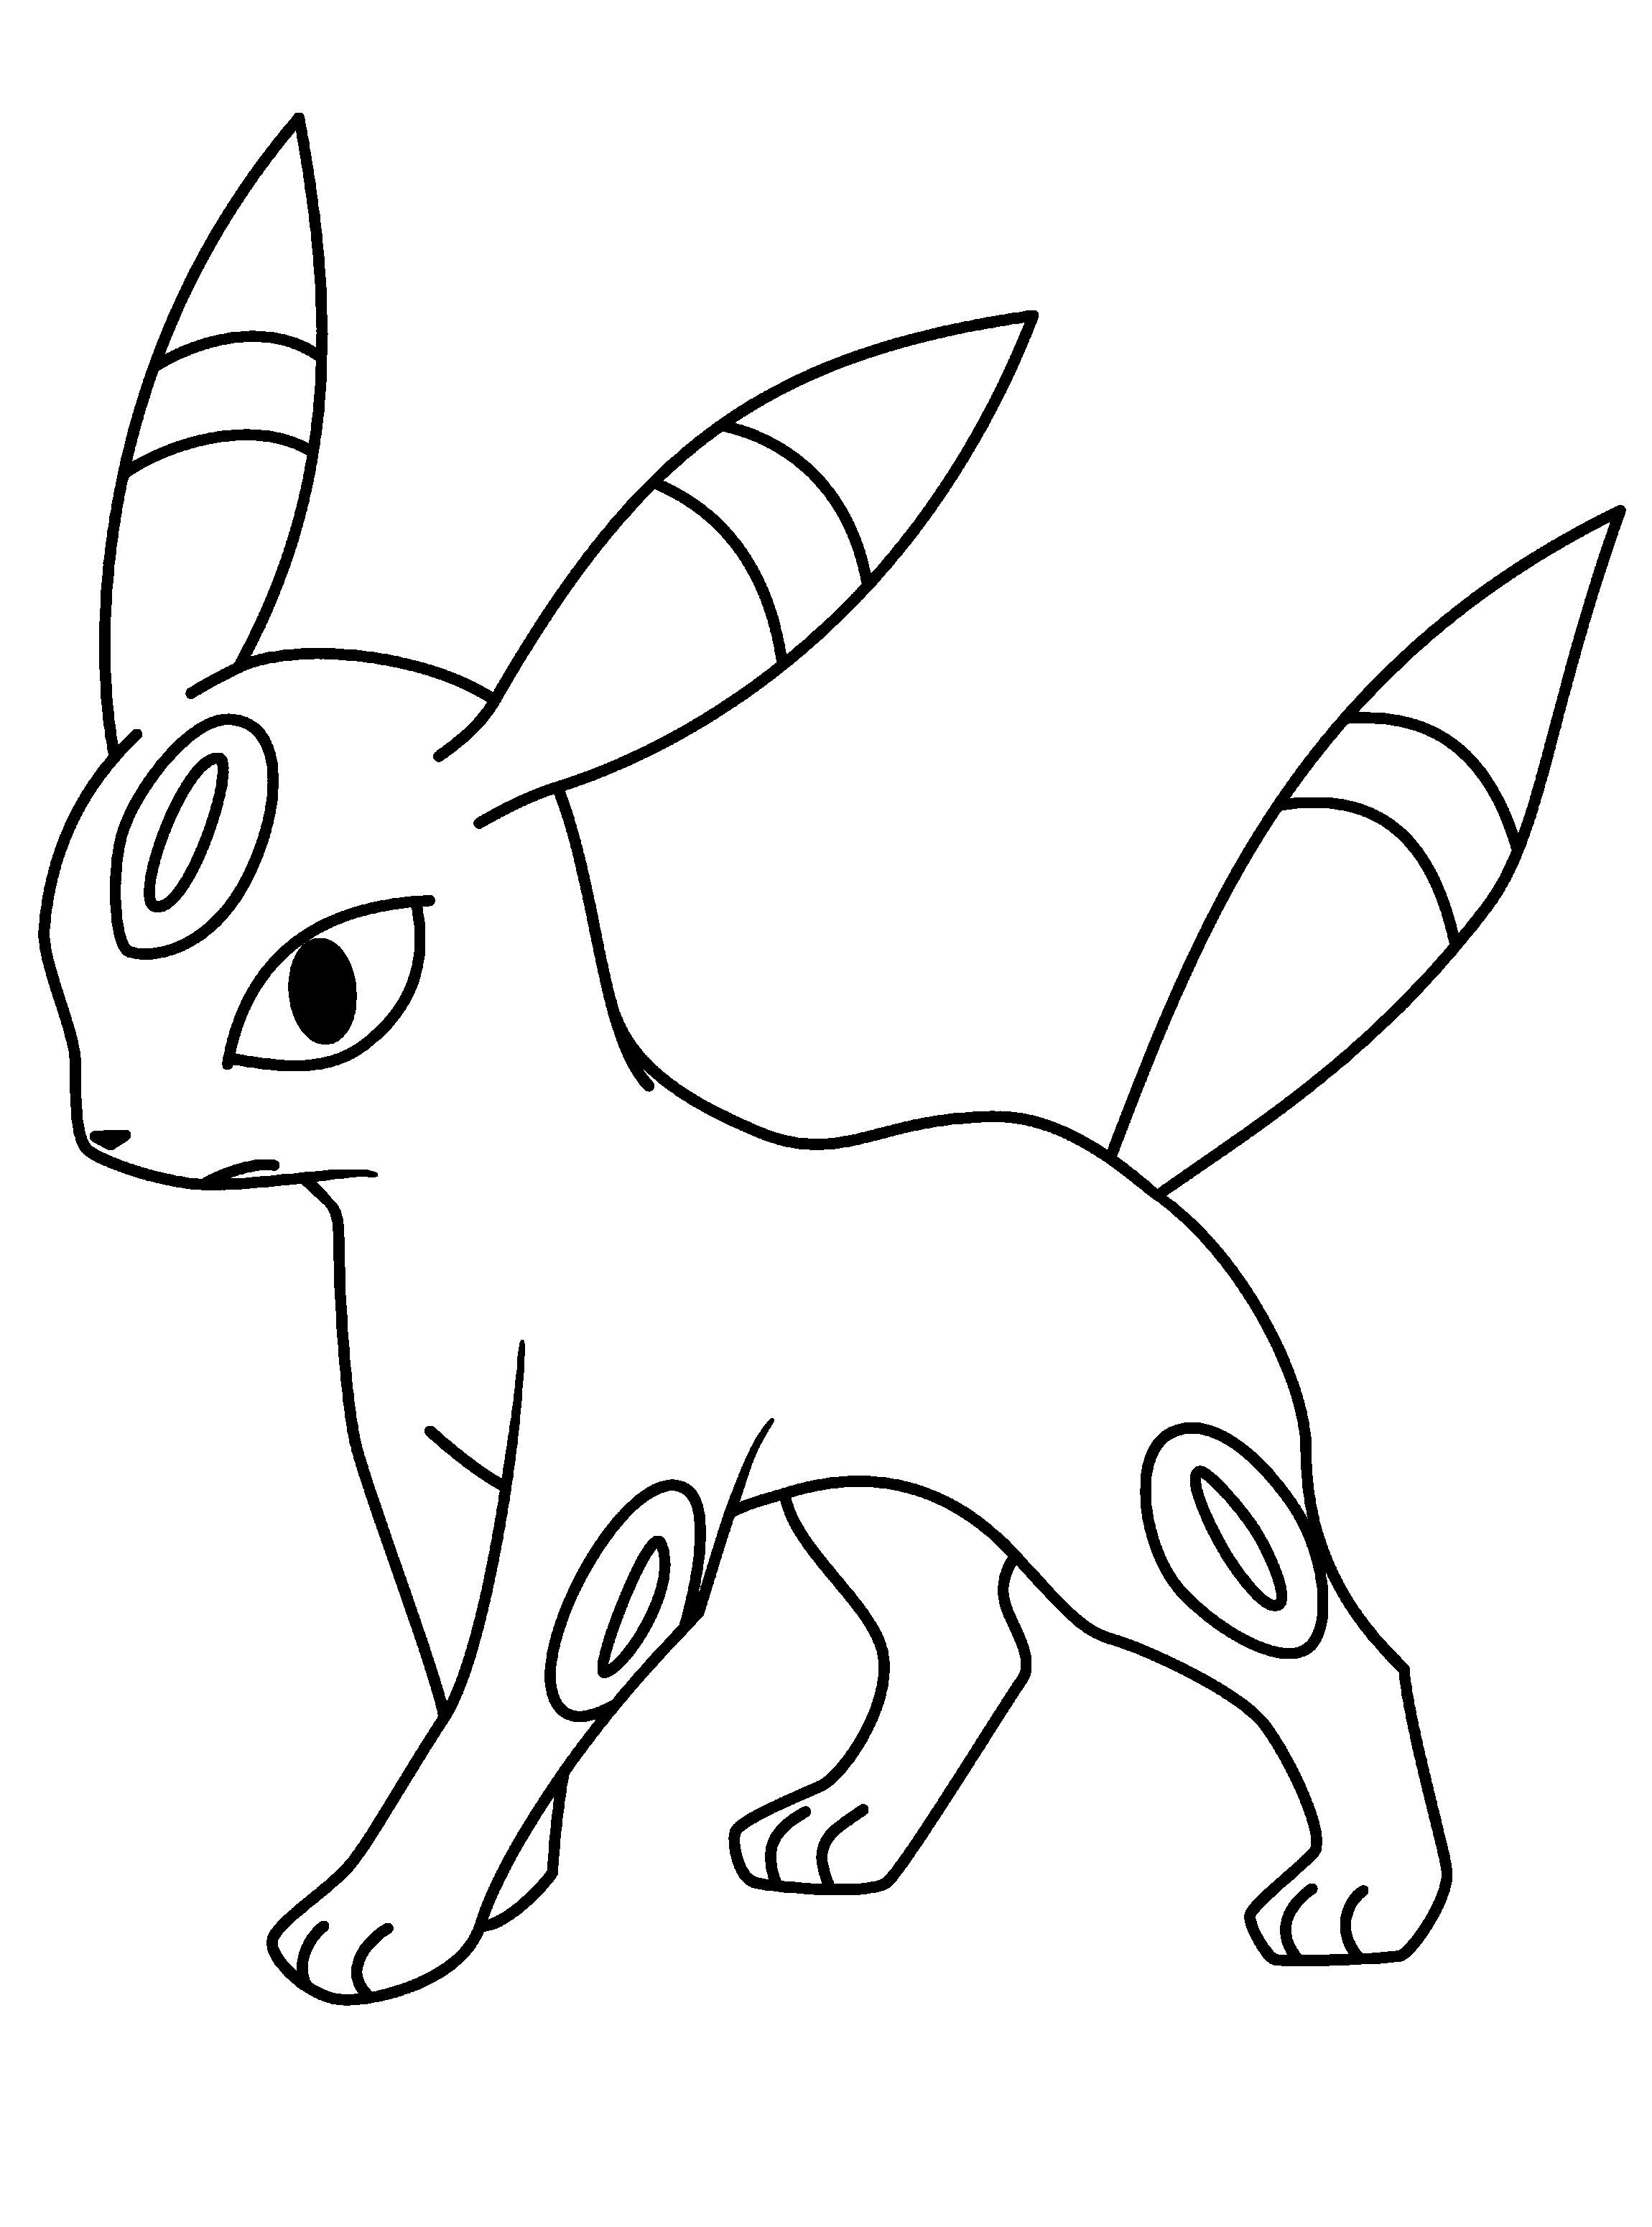 Printable Pokemon Coloring Pages | Coloring Me